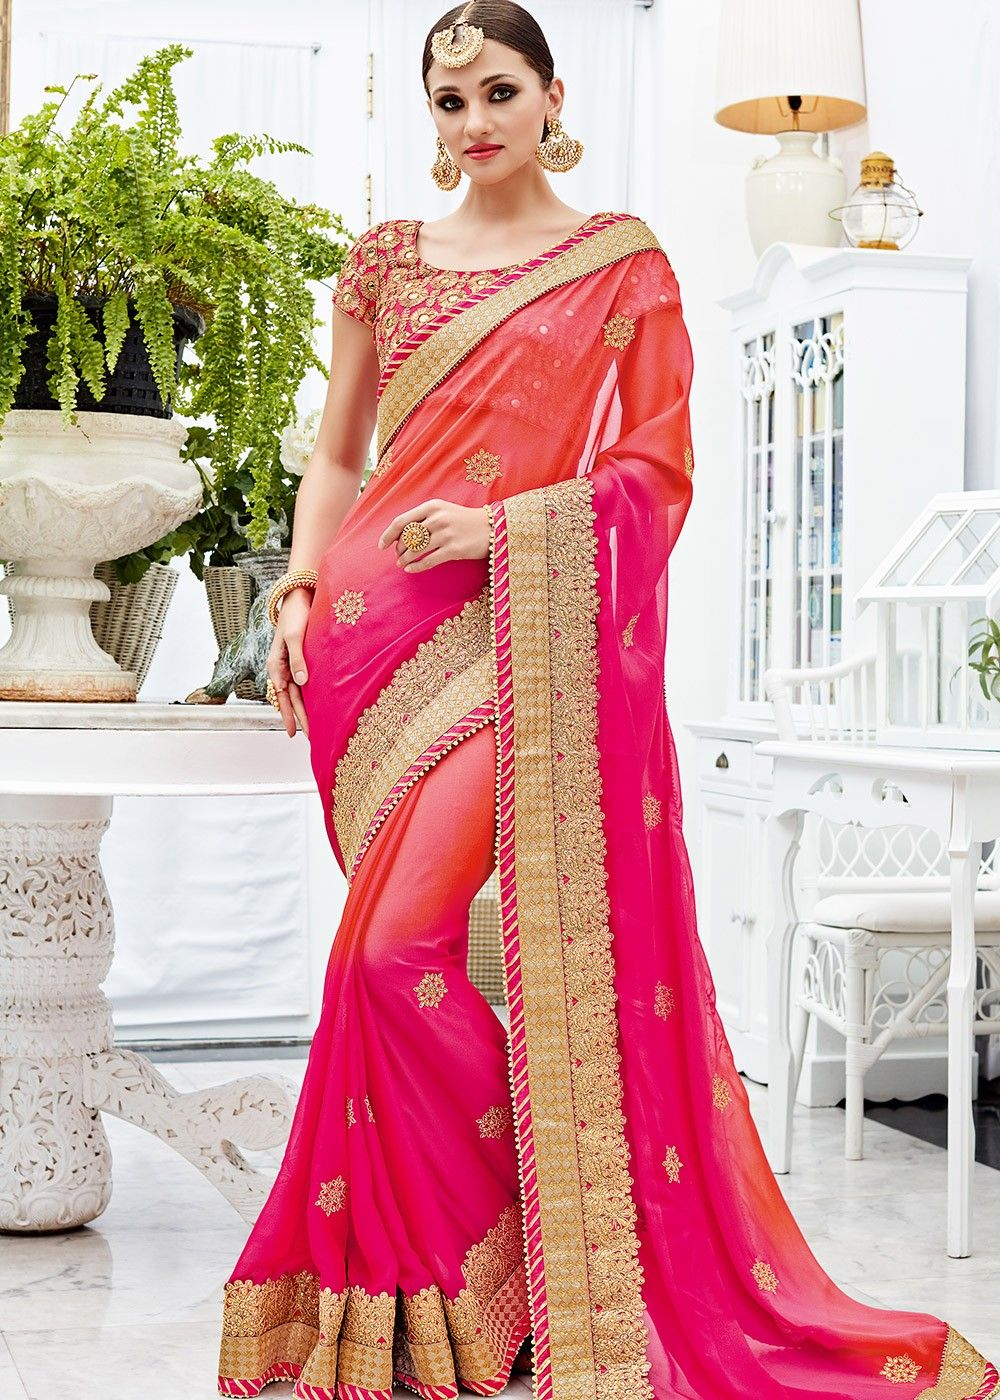 4793010d004f78 Two tone shaded #silk #chiffon #saree with heavy embroidered borders  throughout. Accompanied by a designer pink art silk blouse in all over  mirror work.